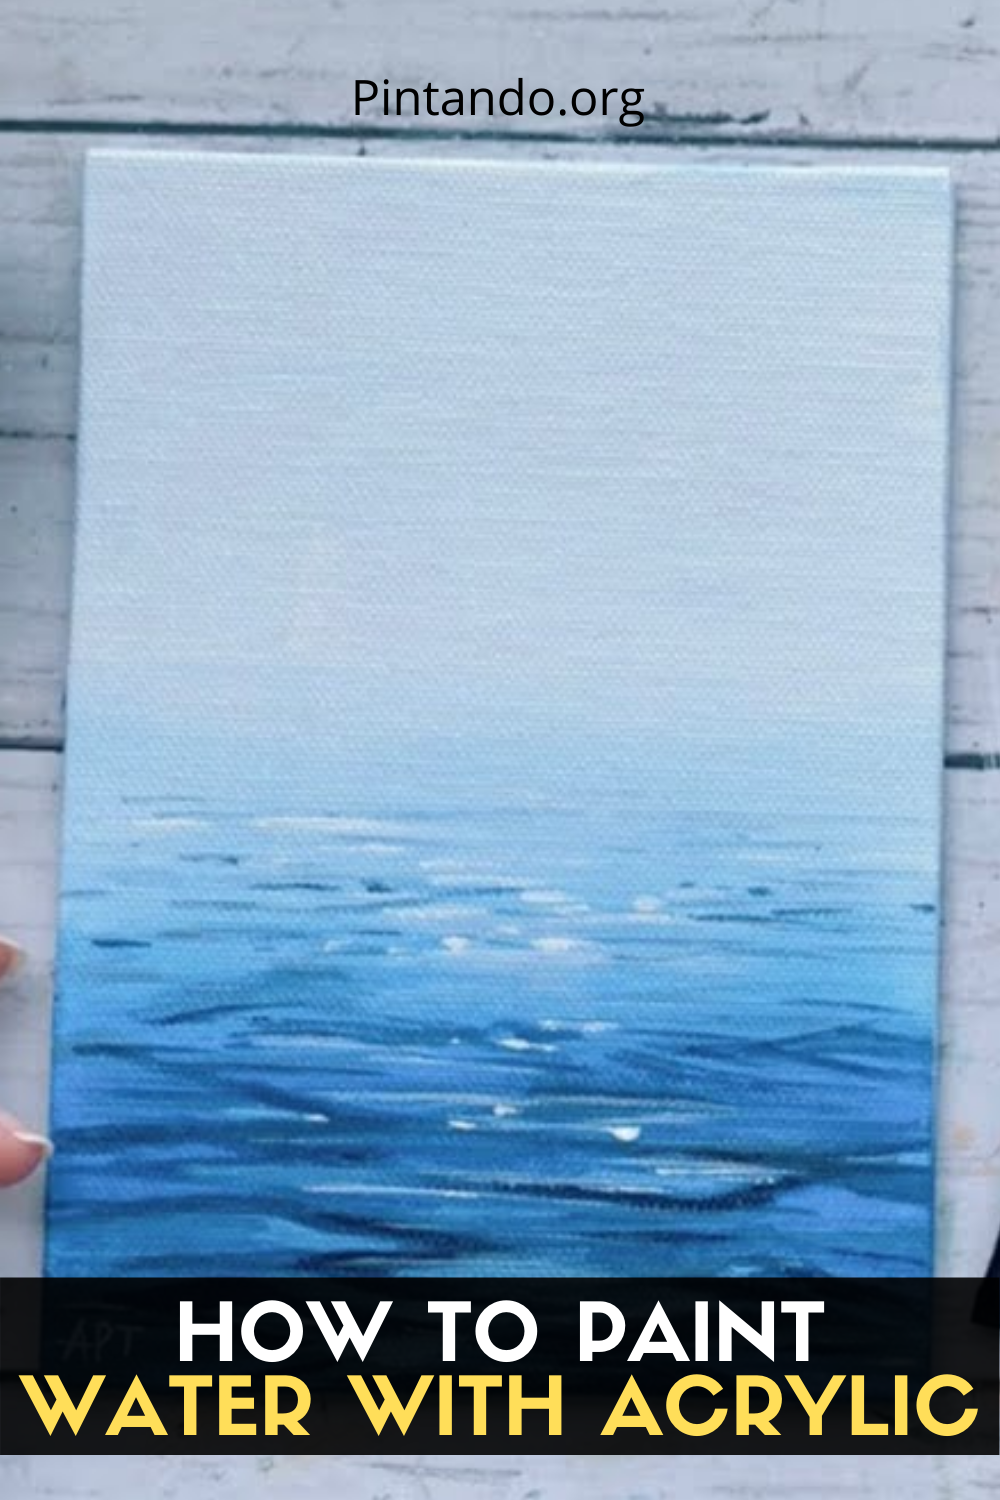 HOW TO PAINT WATER WITH ACRYLIC (1)